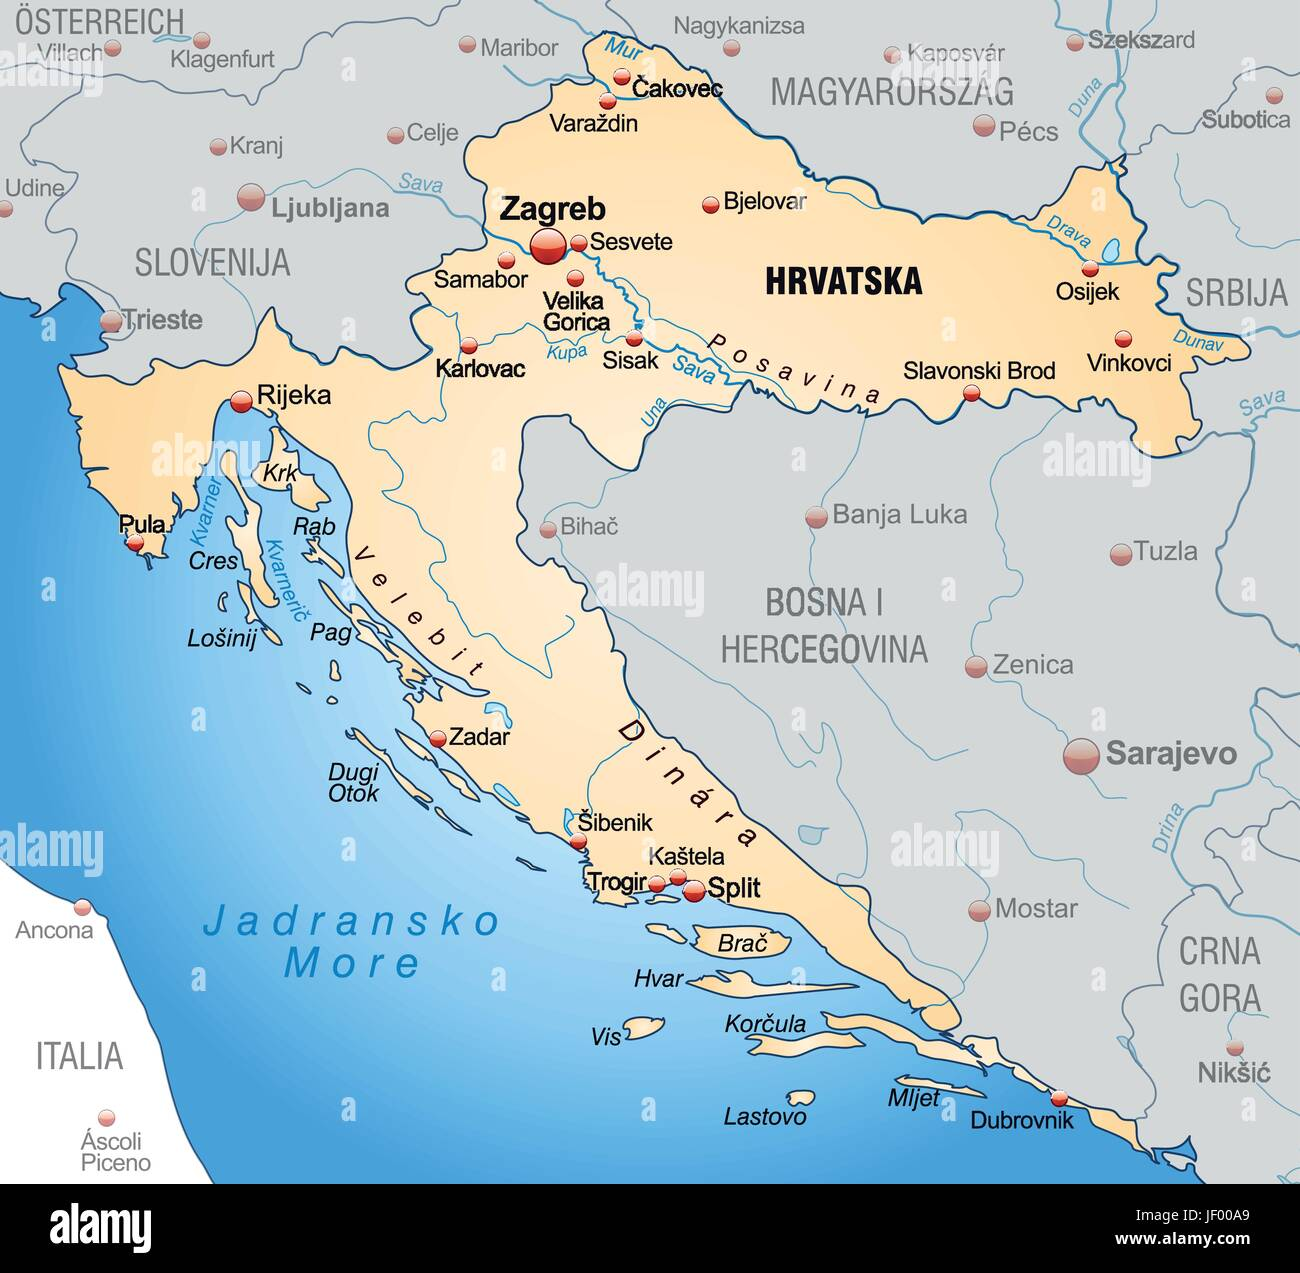 Border card croatia synopsis borders atlas map of the world border card croatia synopsis borders atlas map of the world map gumiabroncs Choice Image